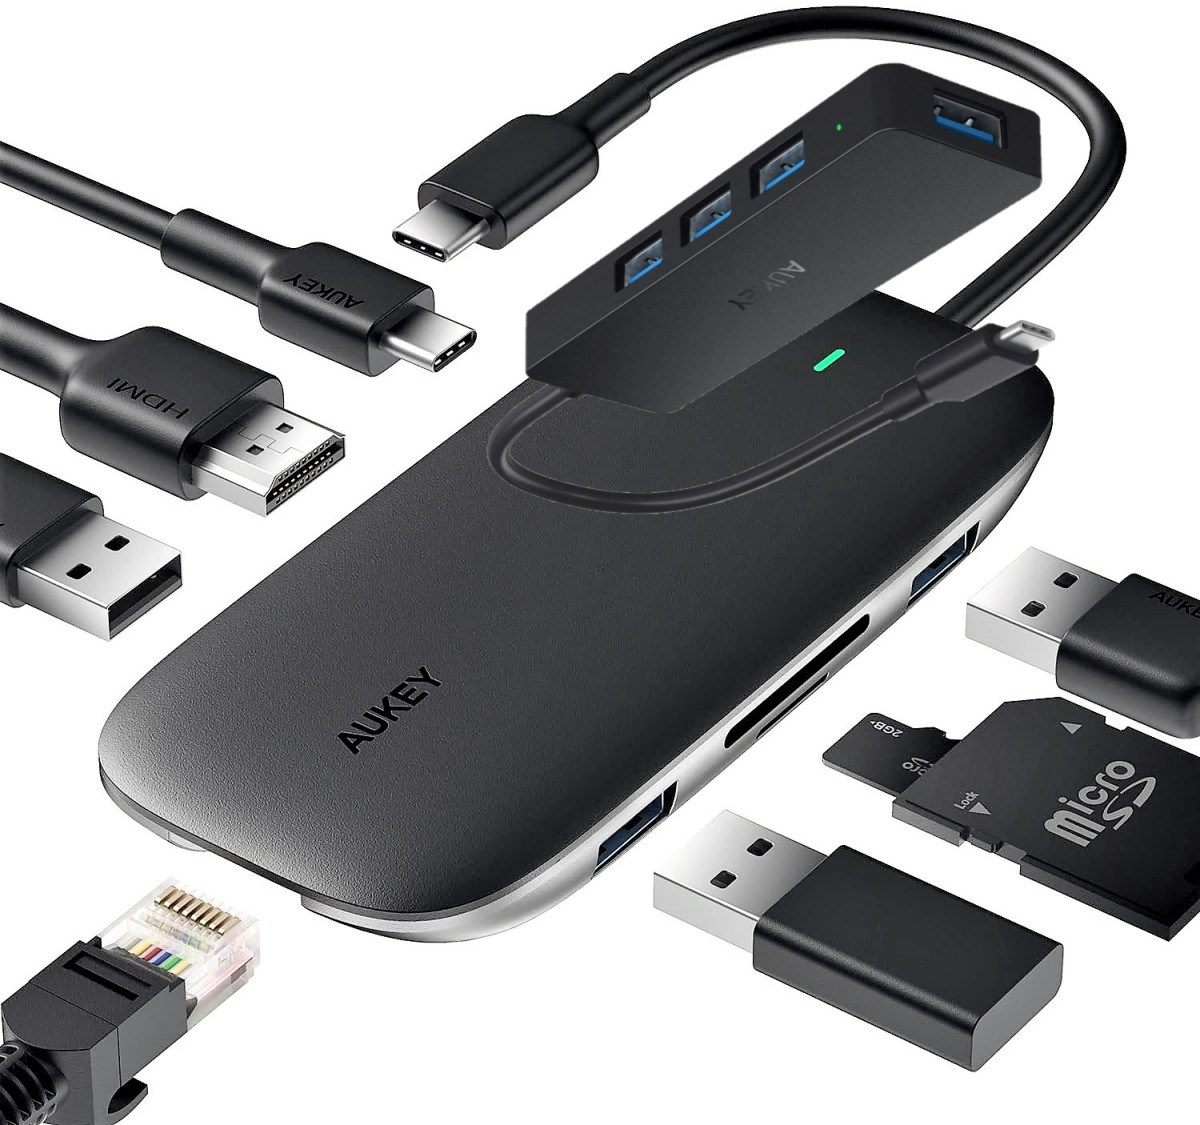 Aukey Link PD Pro Hub (bottom) - USB-C to 4 Port USB 3.0 Hub (top)   *Devices not to scale